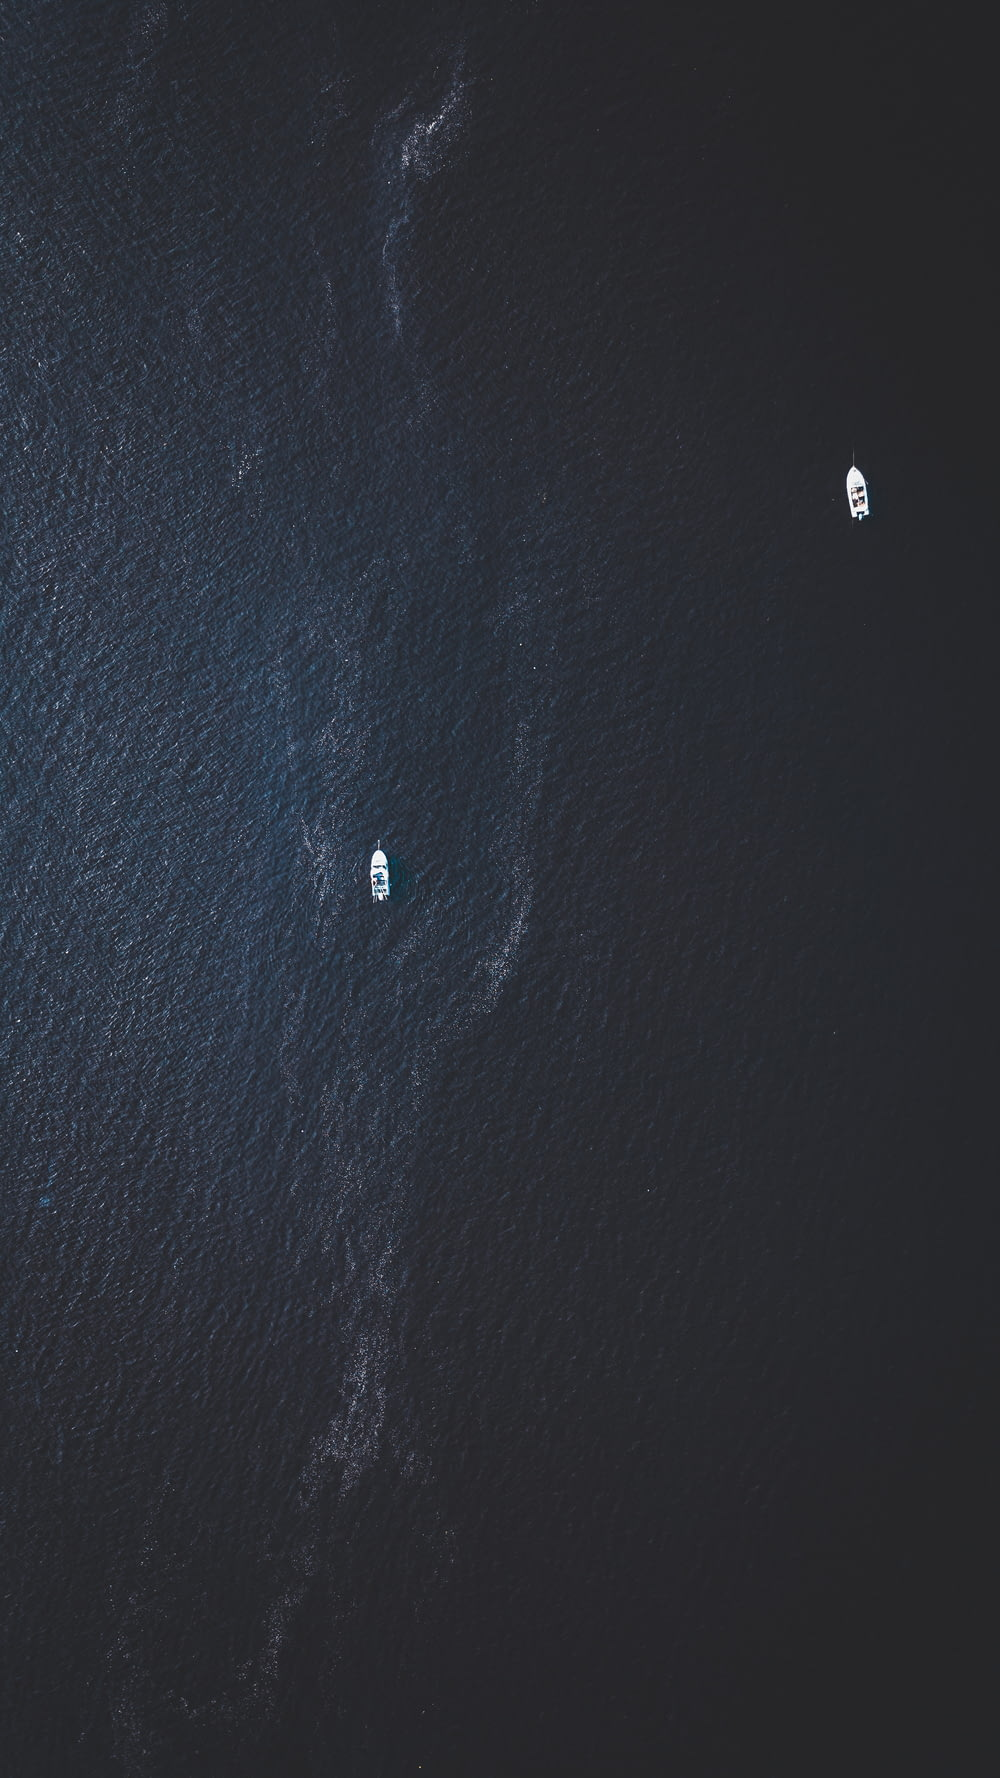 top view photography of two white boats on water at daytime